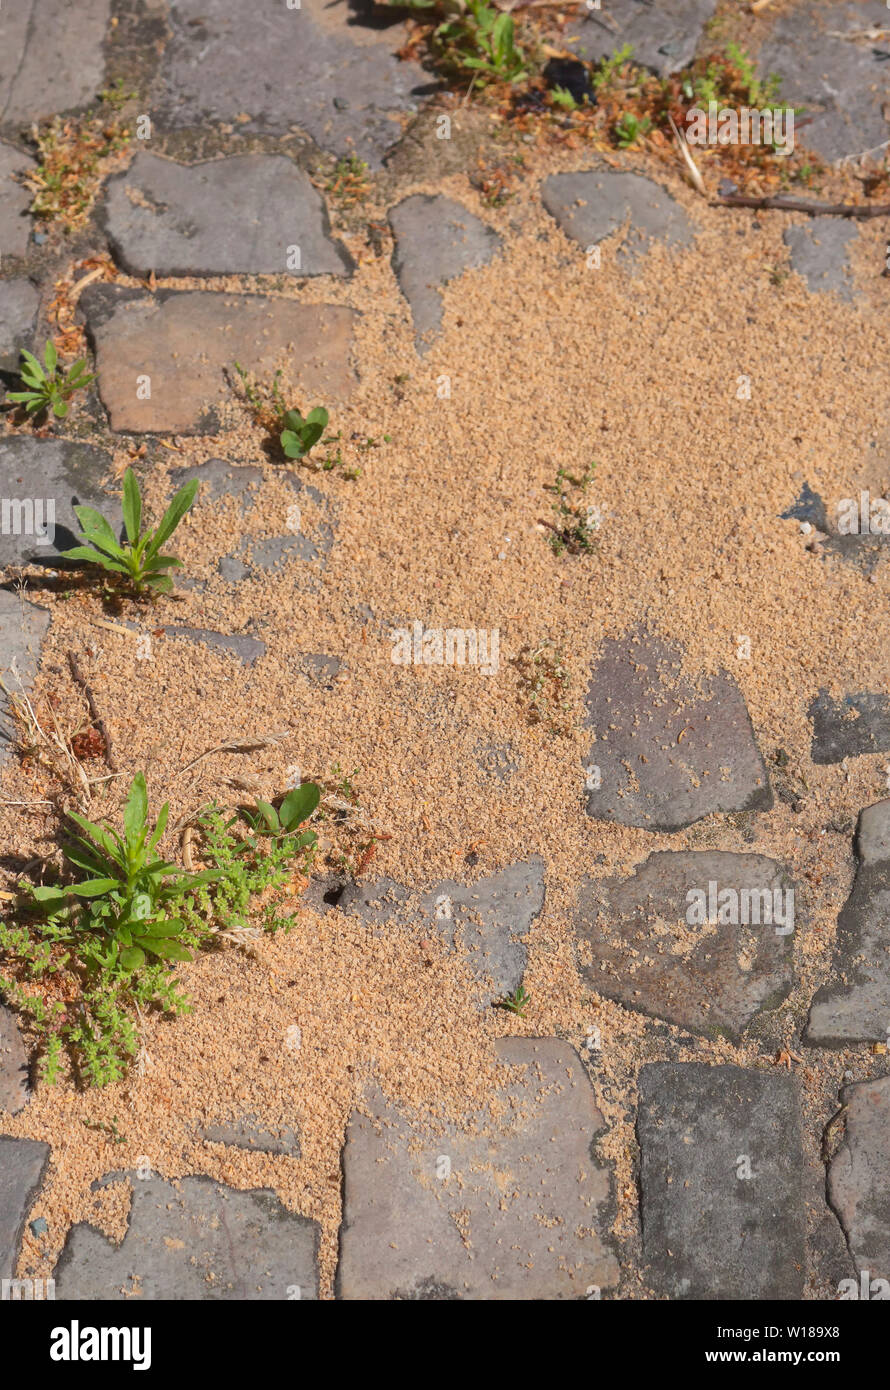 Ant nest on a walkway in Berlin - Stock Image